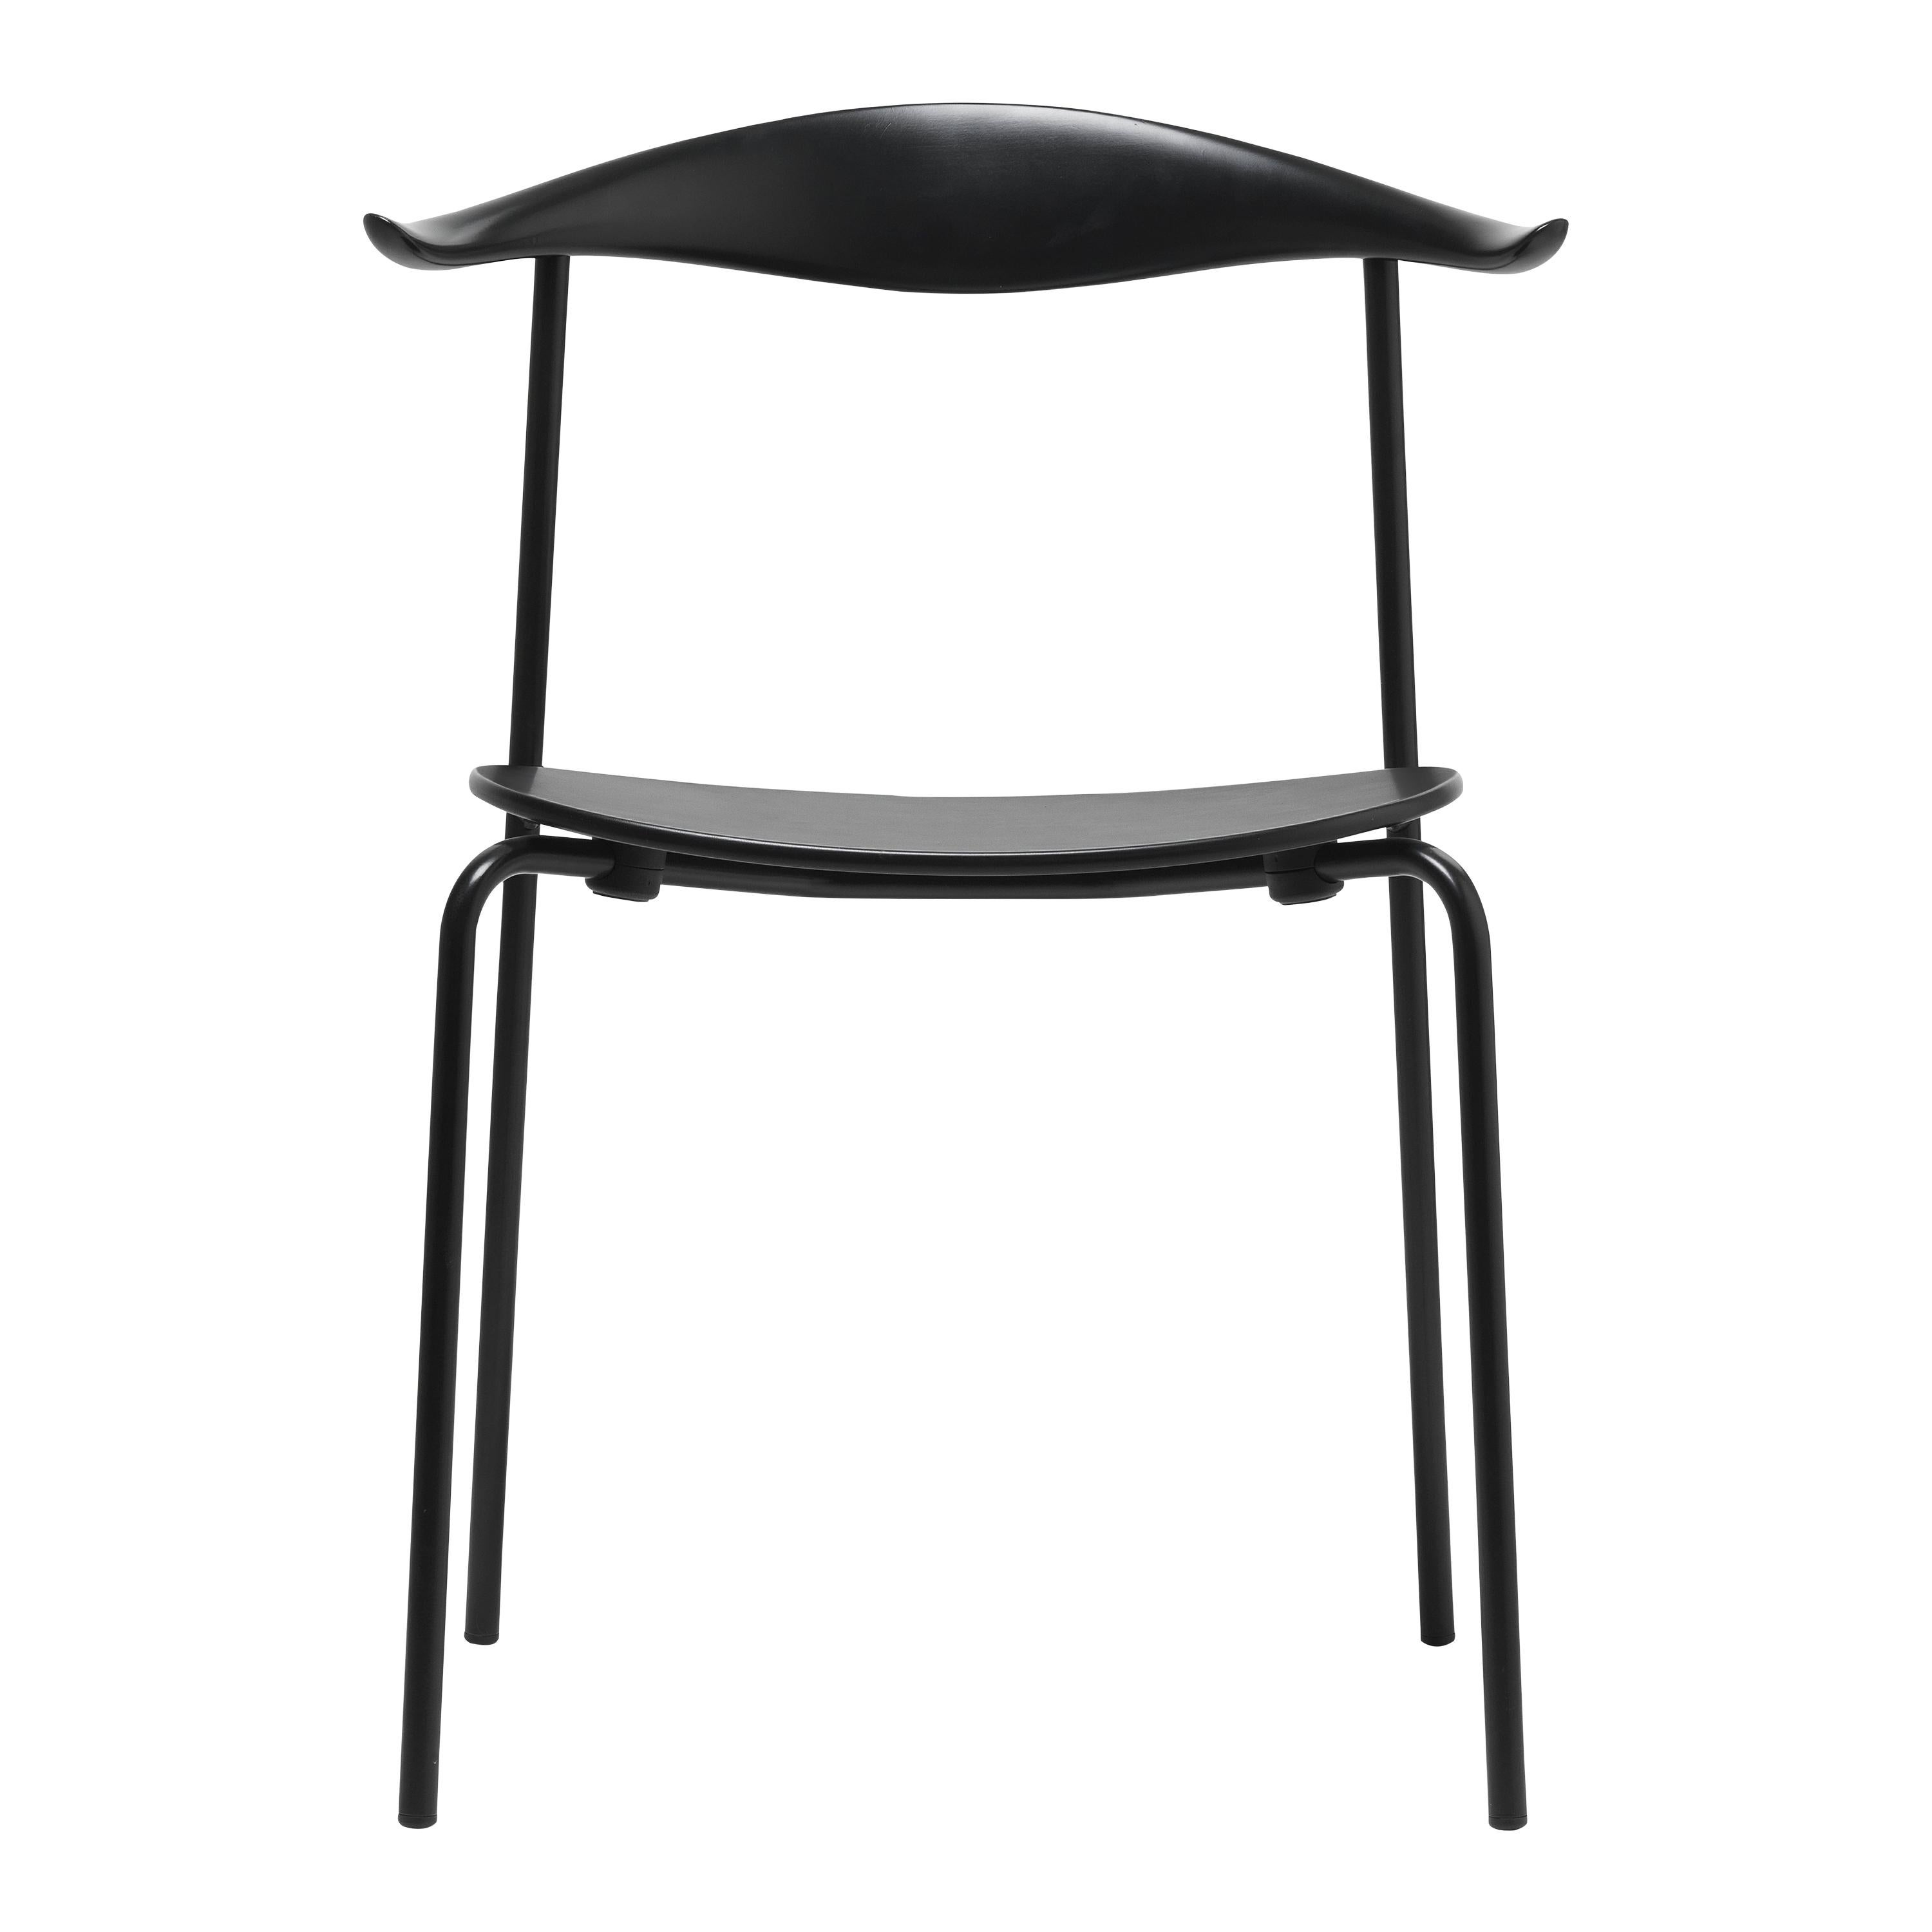 CH88T Dining Chair in Wood with Black Powder Coated Steel Base by Hans J. Wegner